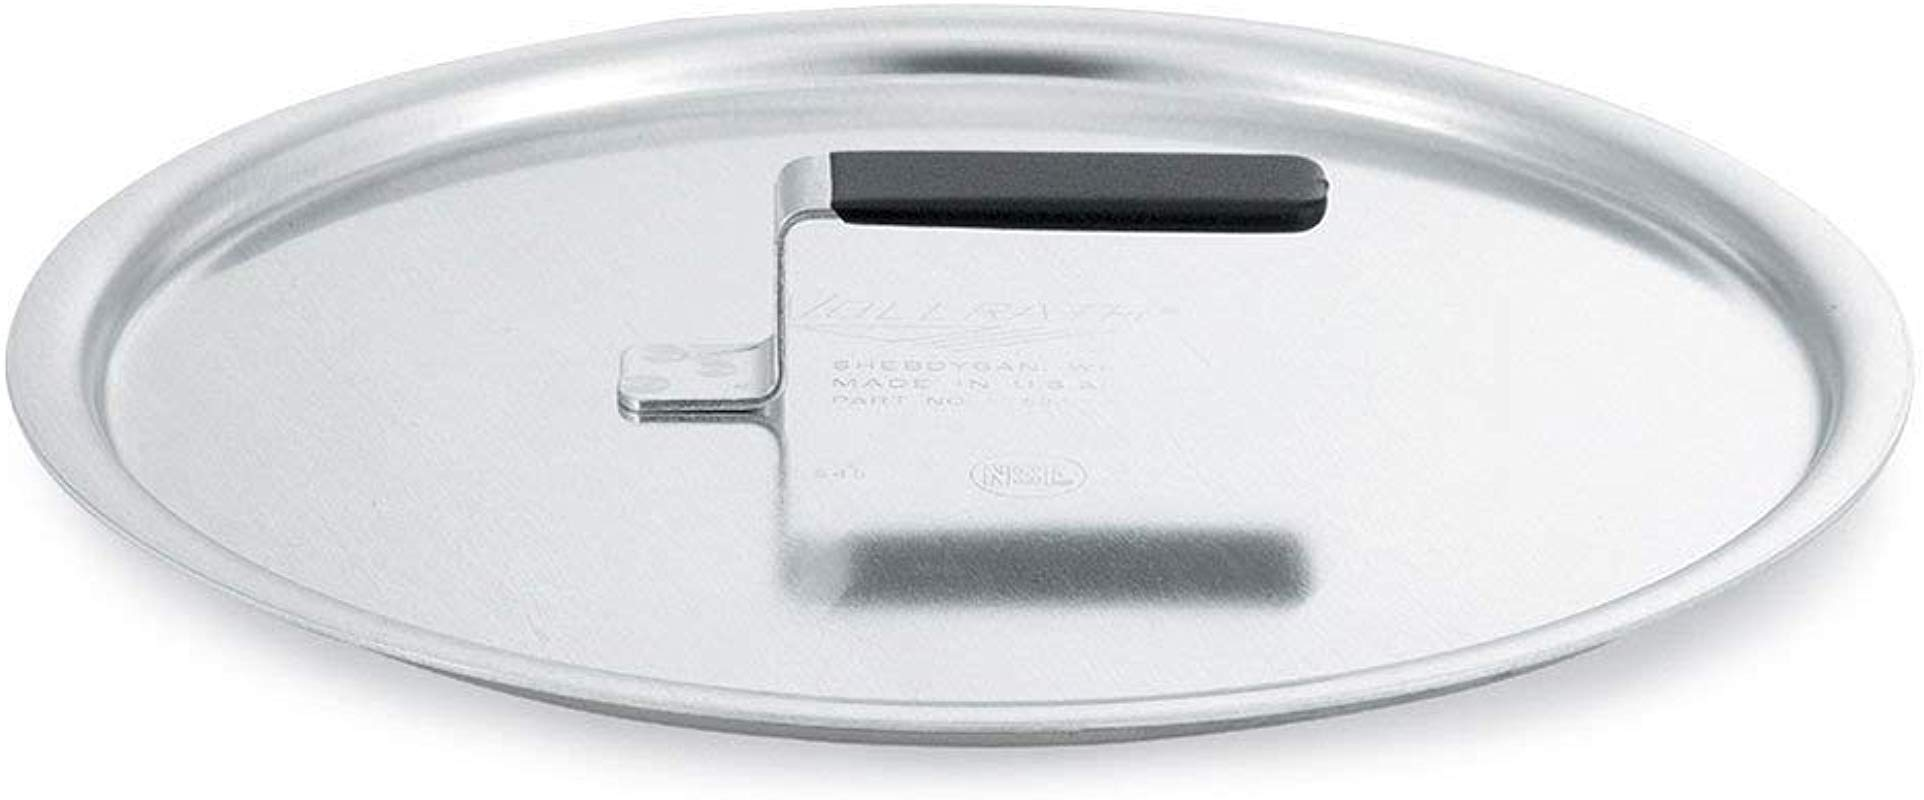 Vollrath 67315 10 1 2 Wear Ever Flat Cover For Aluminum Cookware